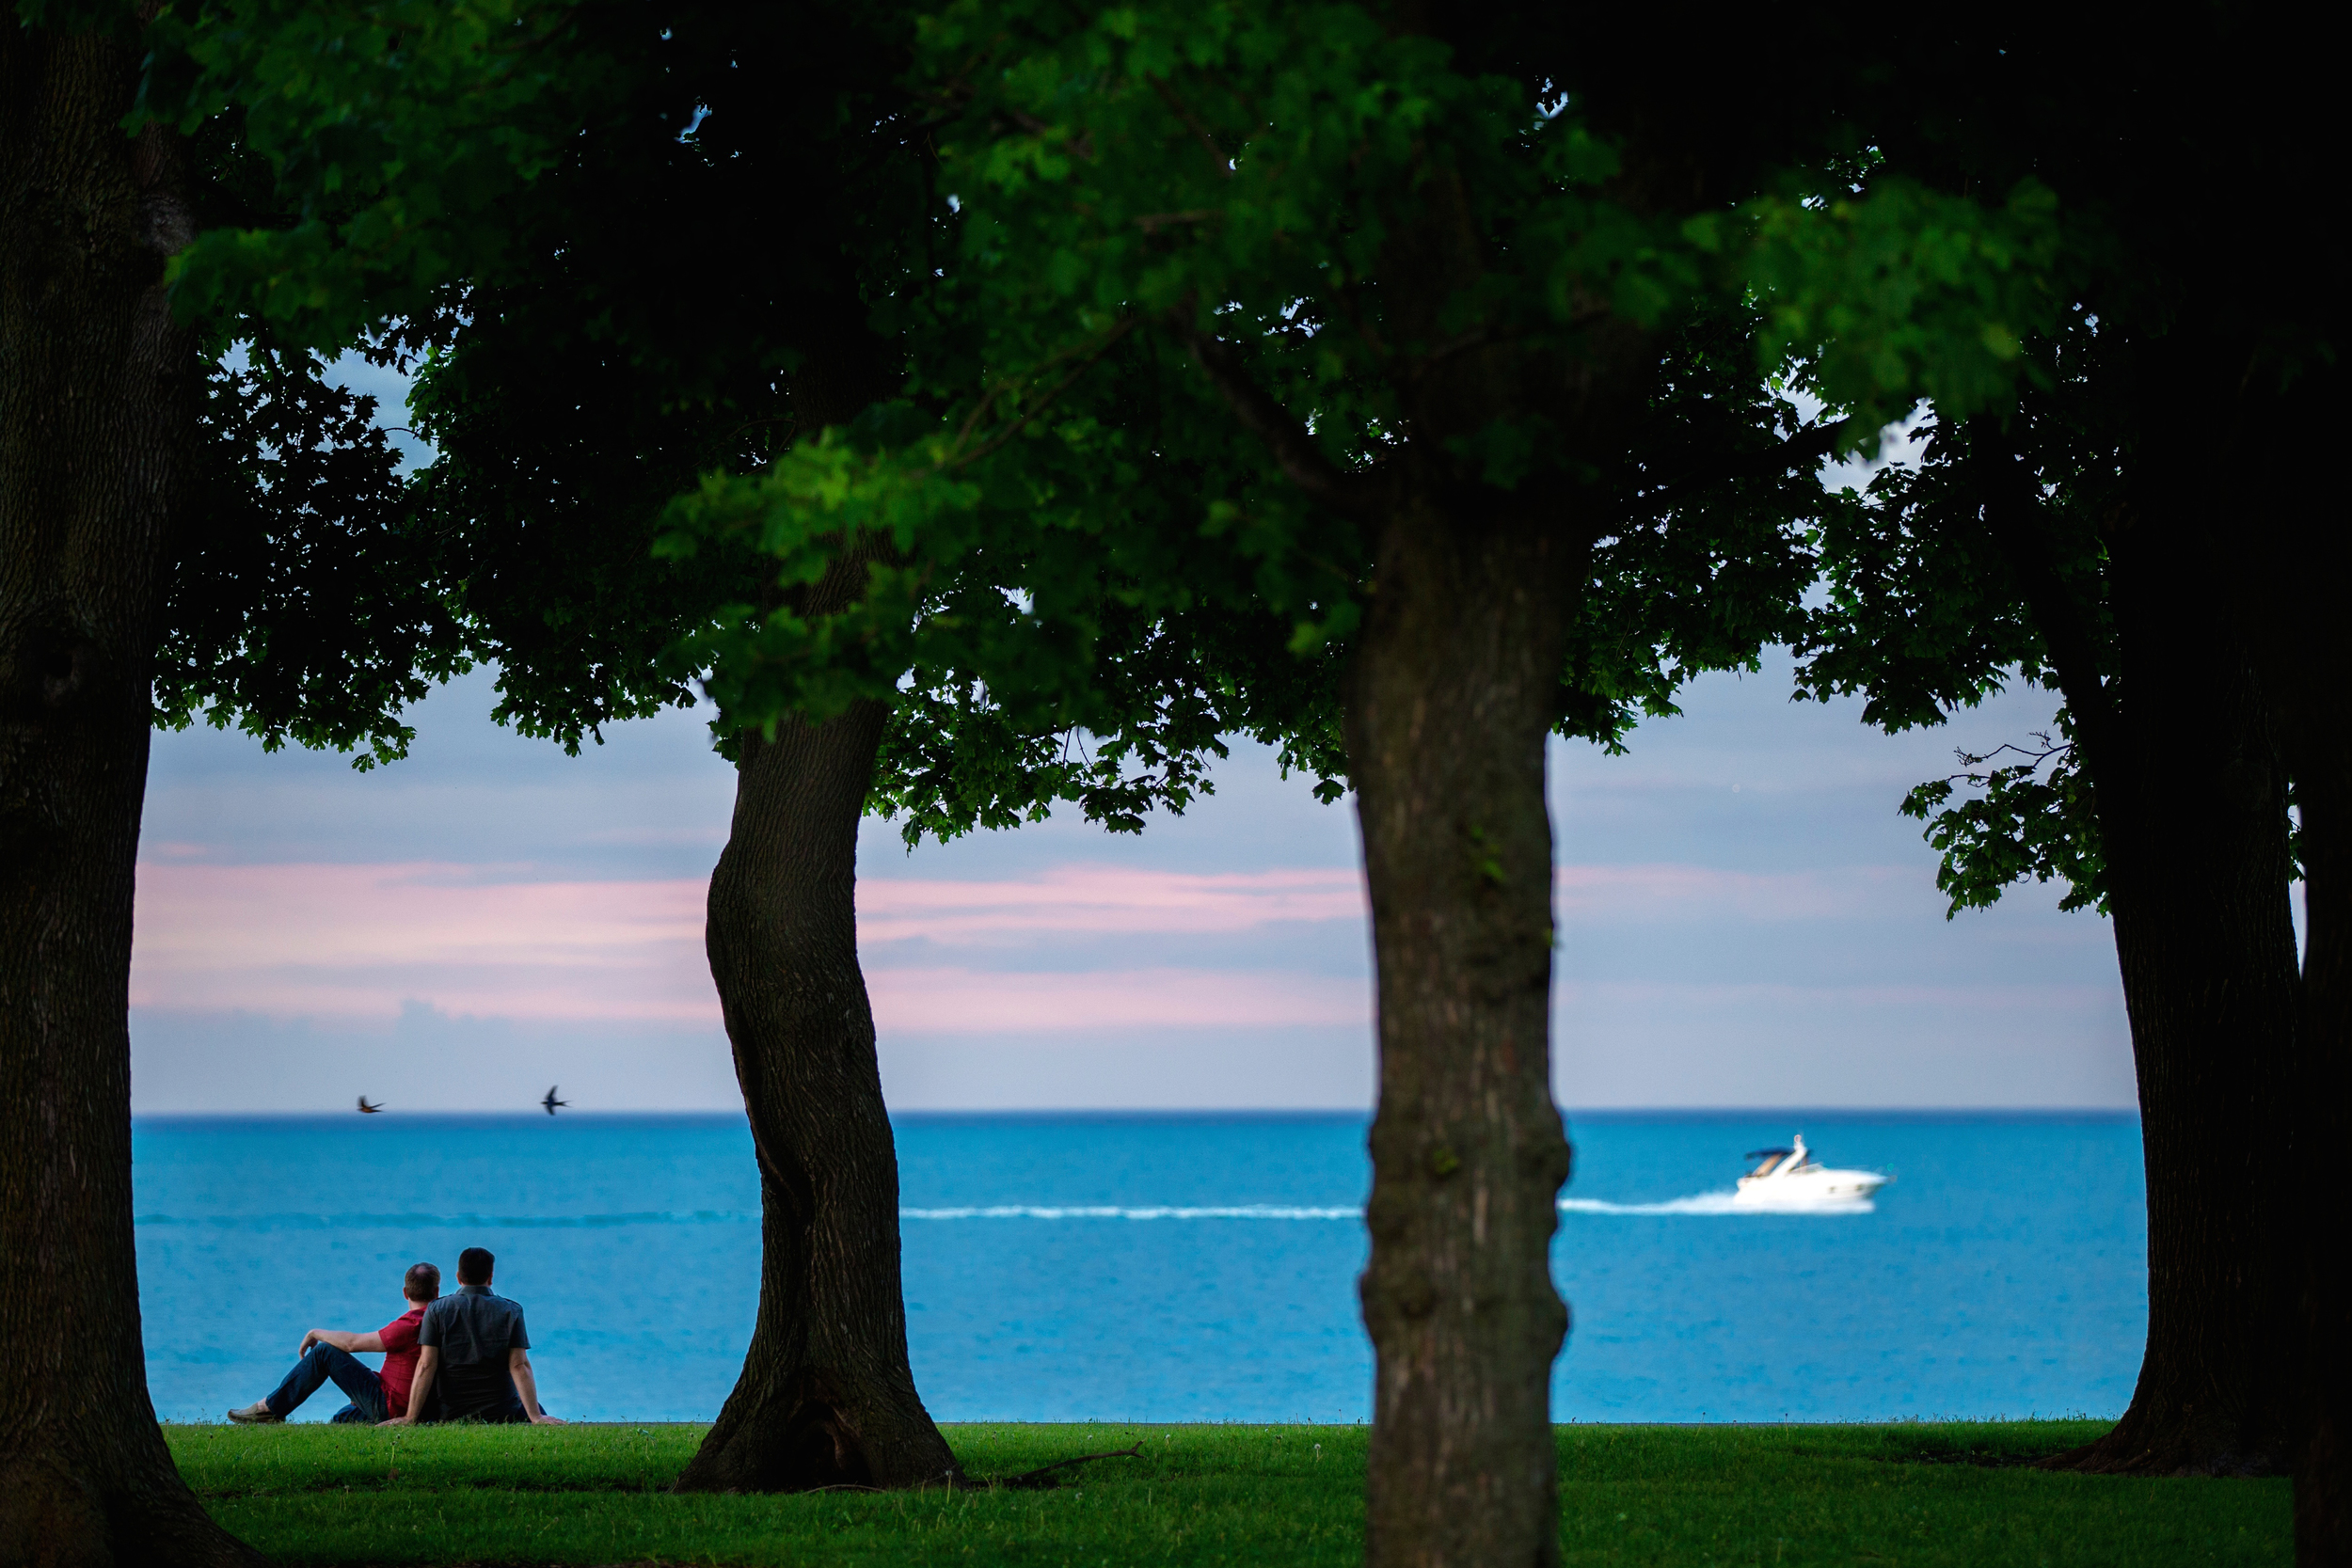 couple-watches-boat-go-by-at-belmont-harbor-chicago-lake-michigan.jpg